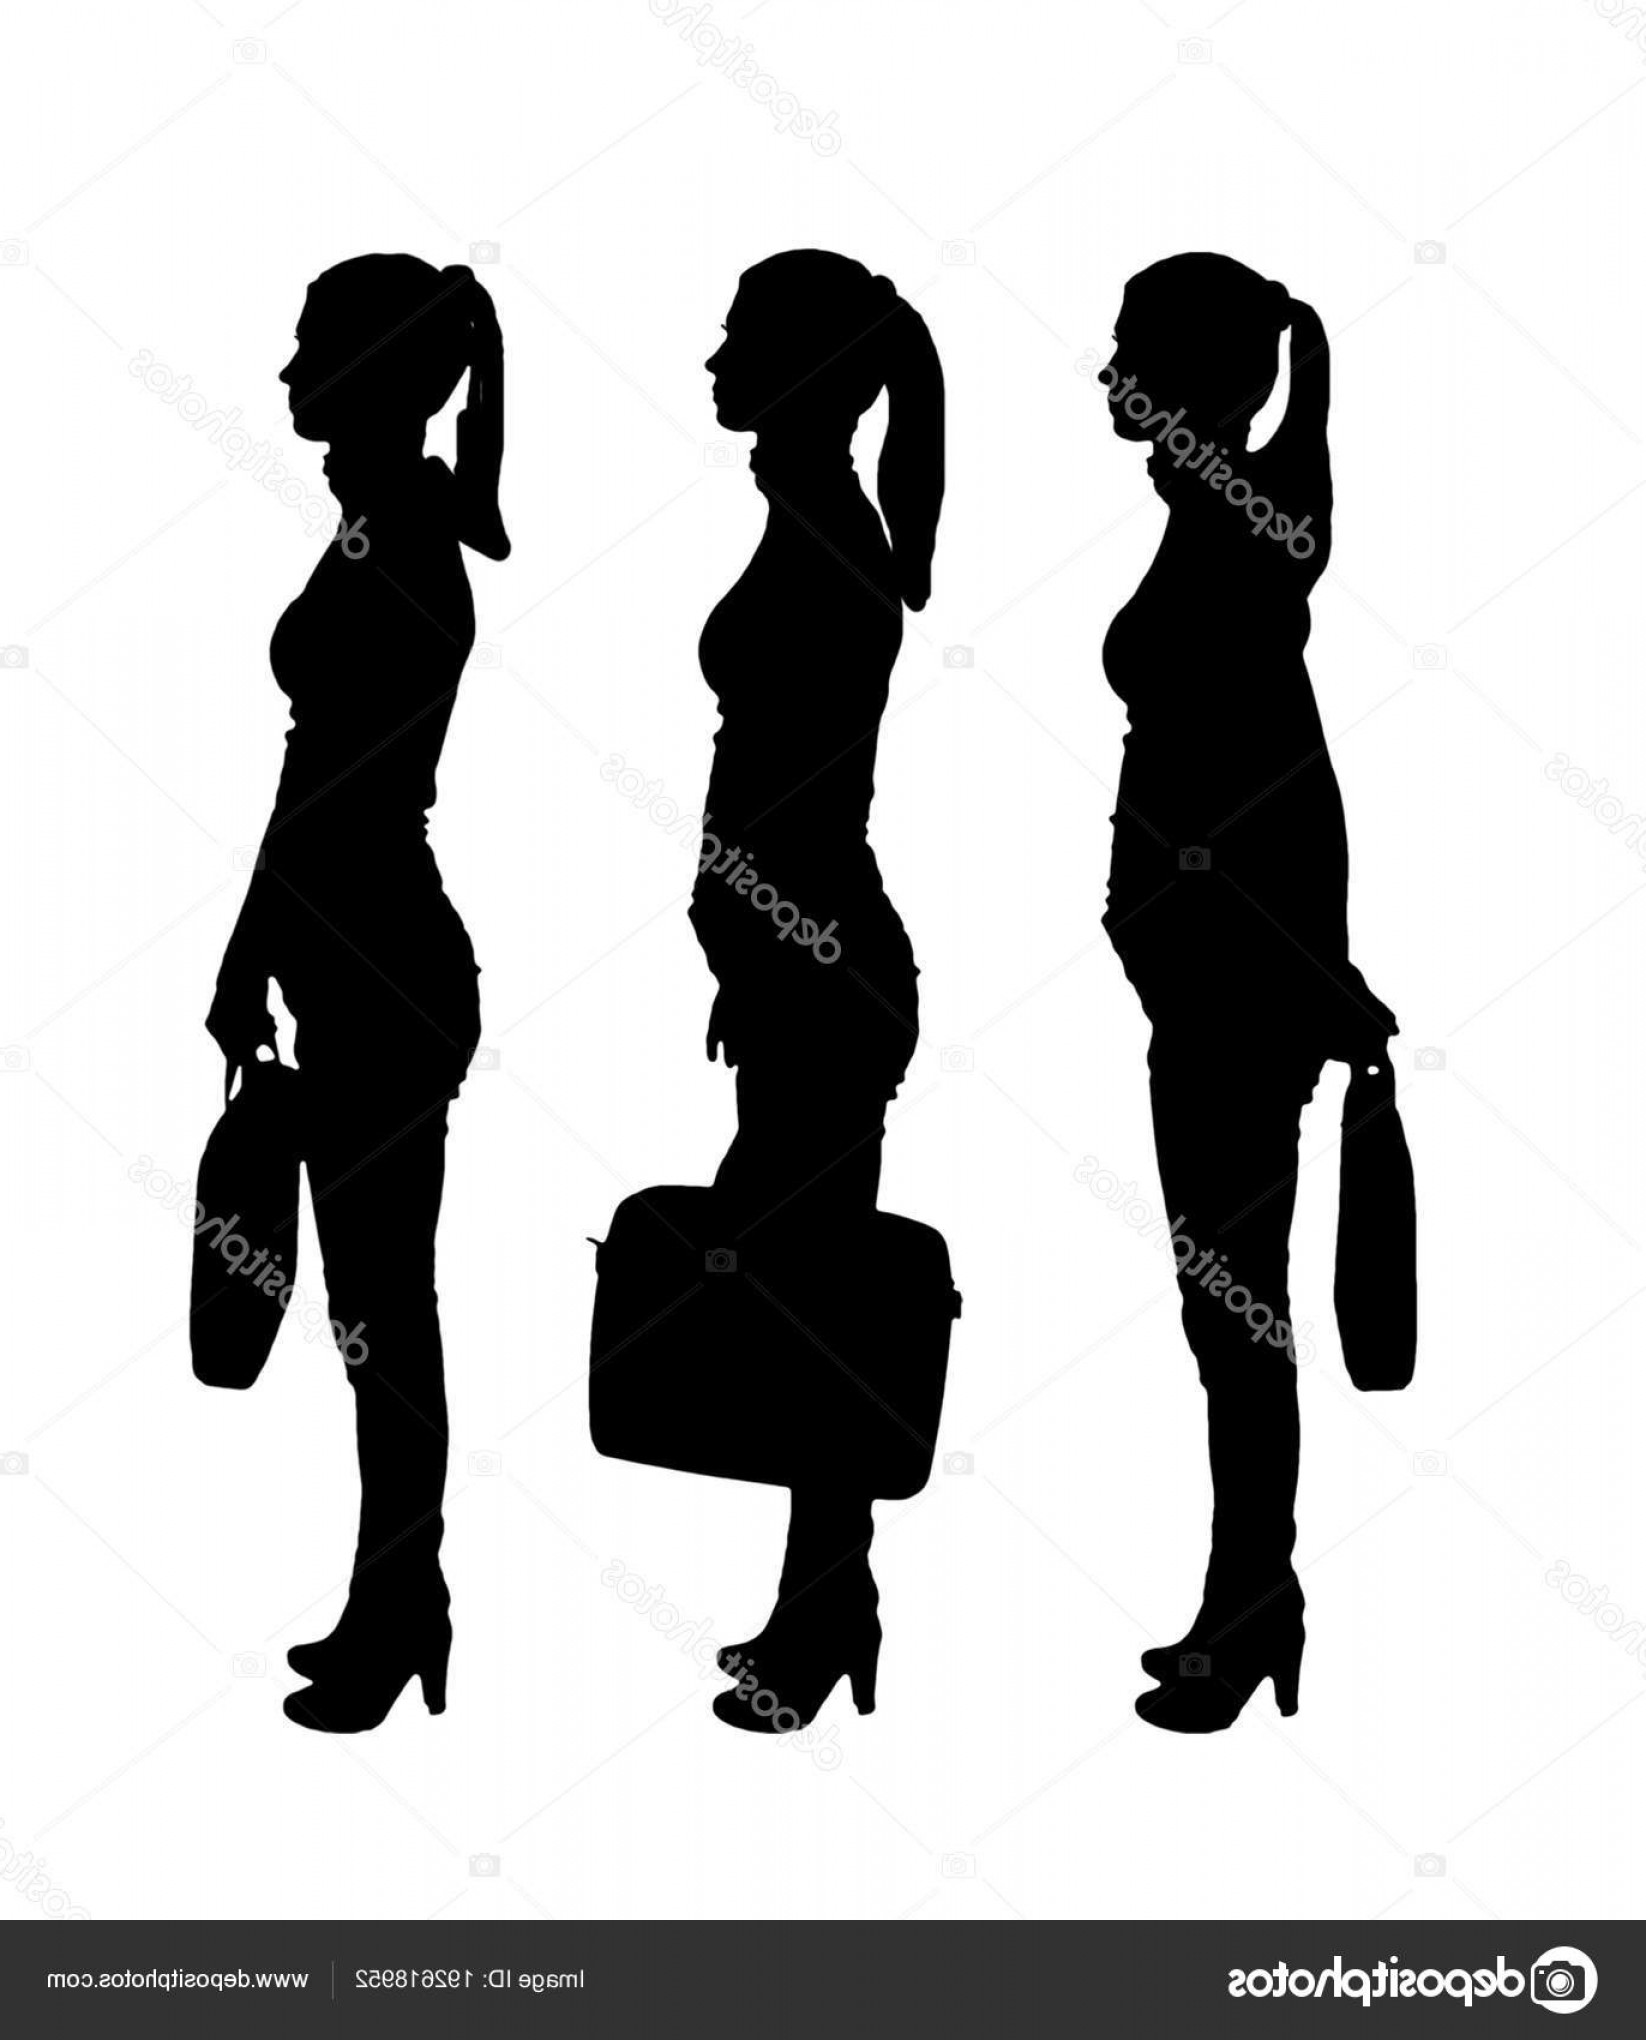 Soldier Woman Profile Vector: Stock Illustration Vector Silhouette Of Three Business